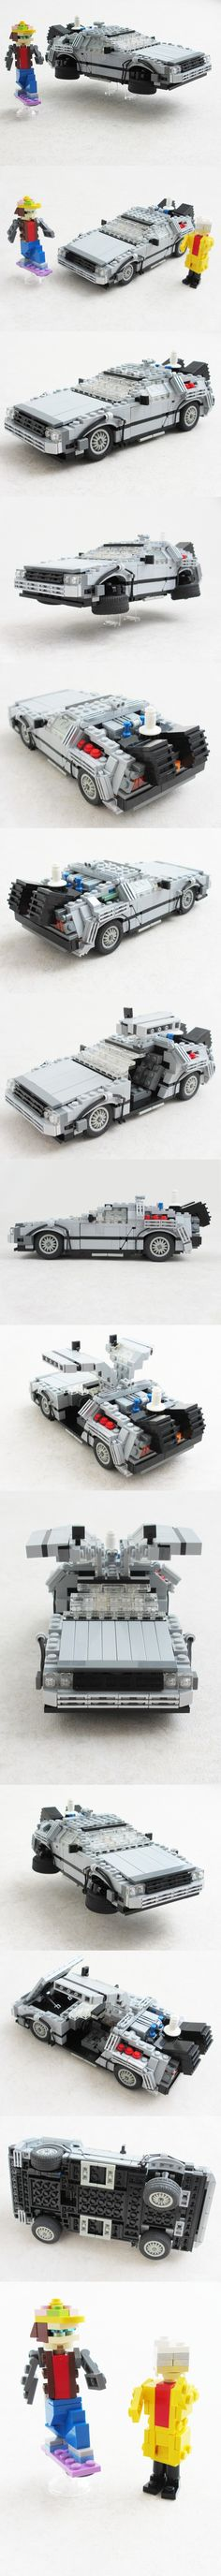 LEGO DeLorean from Back to the Future